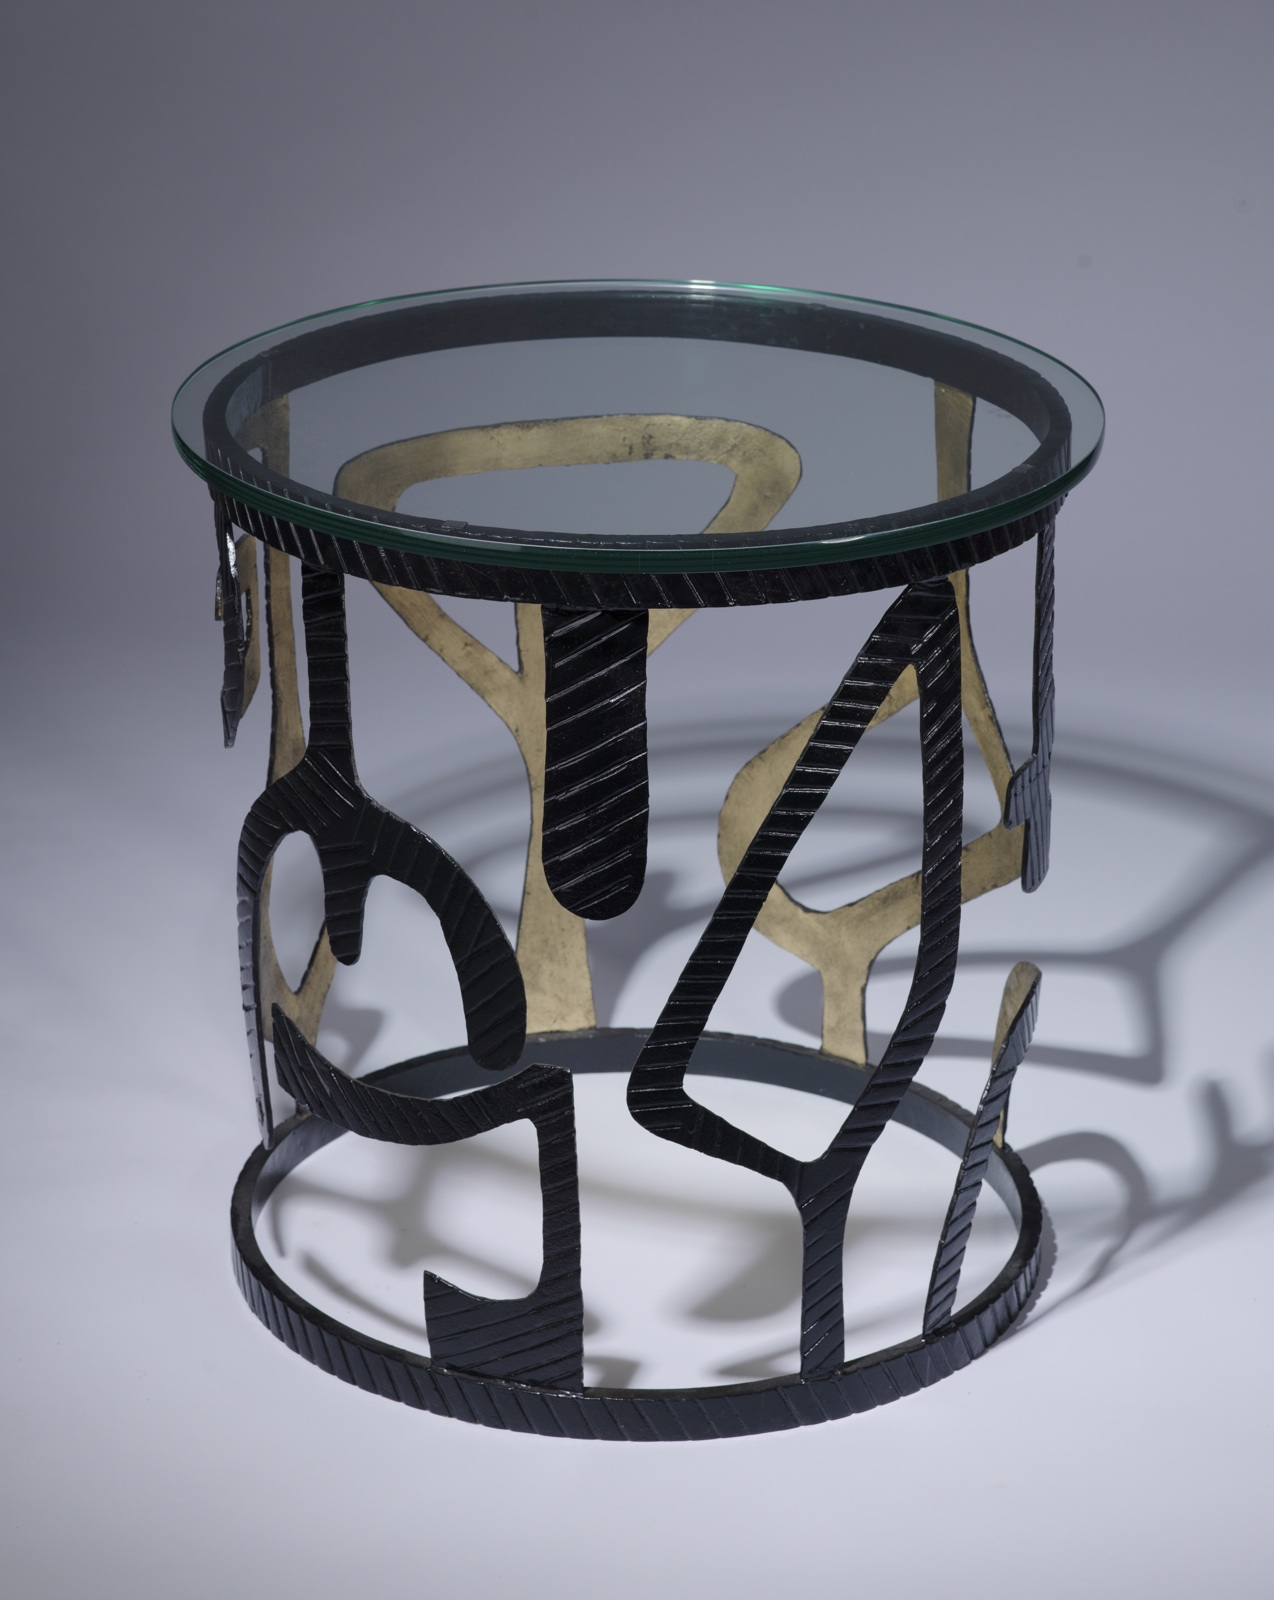 Pair Of Unique Modern Wrought Iron U0027mirou0027 Side Tables In Black, Gold Finish